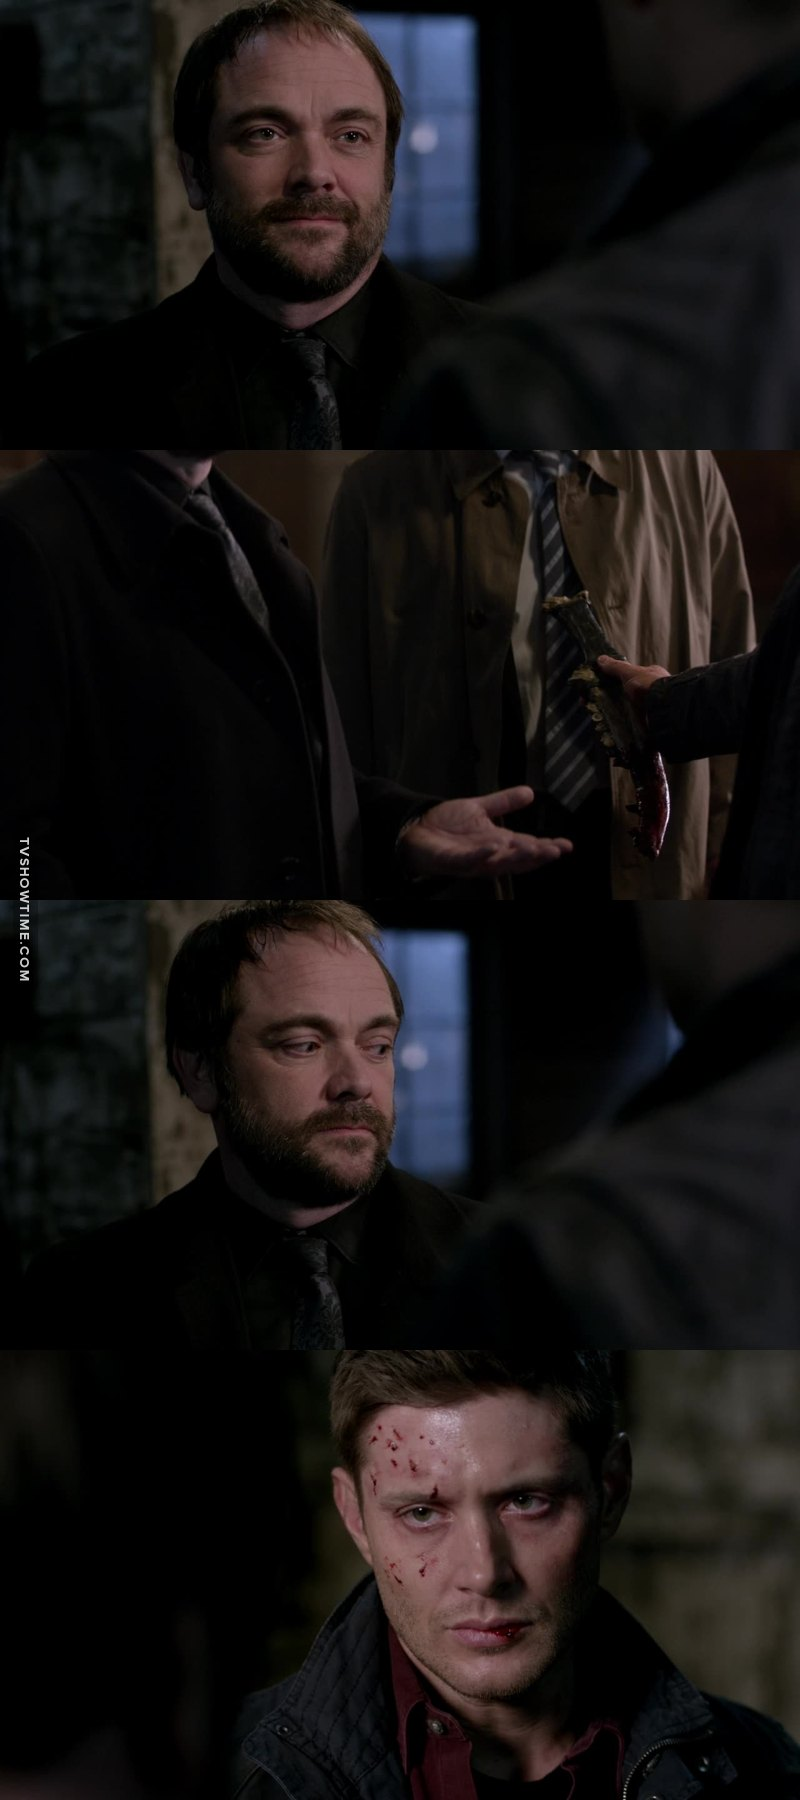 Poor Crowley, he's not and will never be trustworthy but he can be a friend in his way and he always comes when the Winchester need him. He wanted a friend in Dean, a team, he's bored in hell and I really don't like the way they treat him :( Now his bitch mother is going to make him turn on them